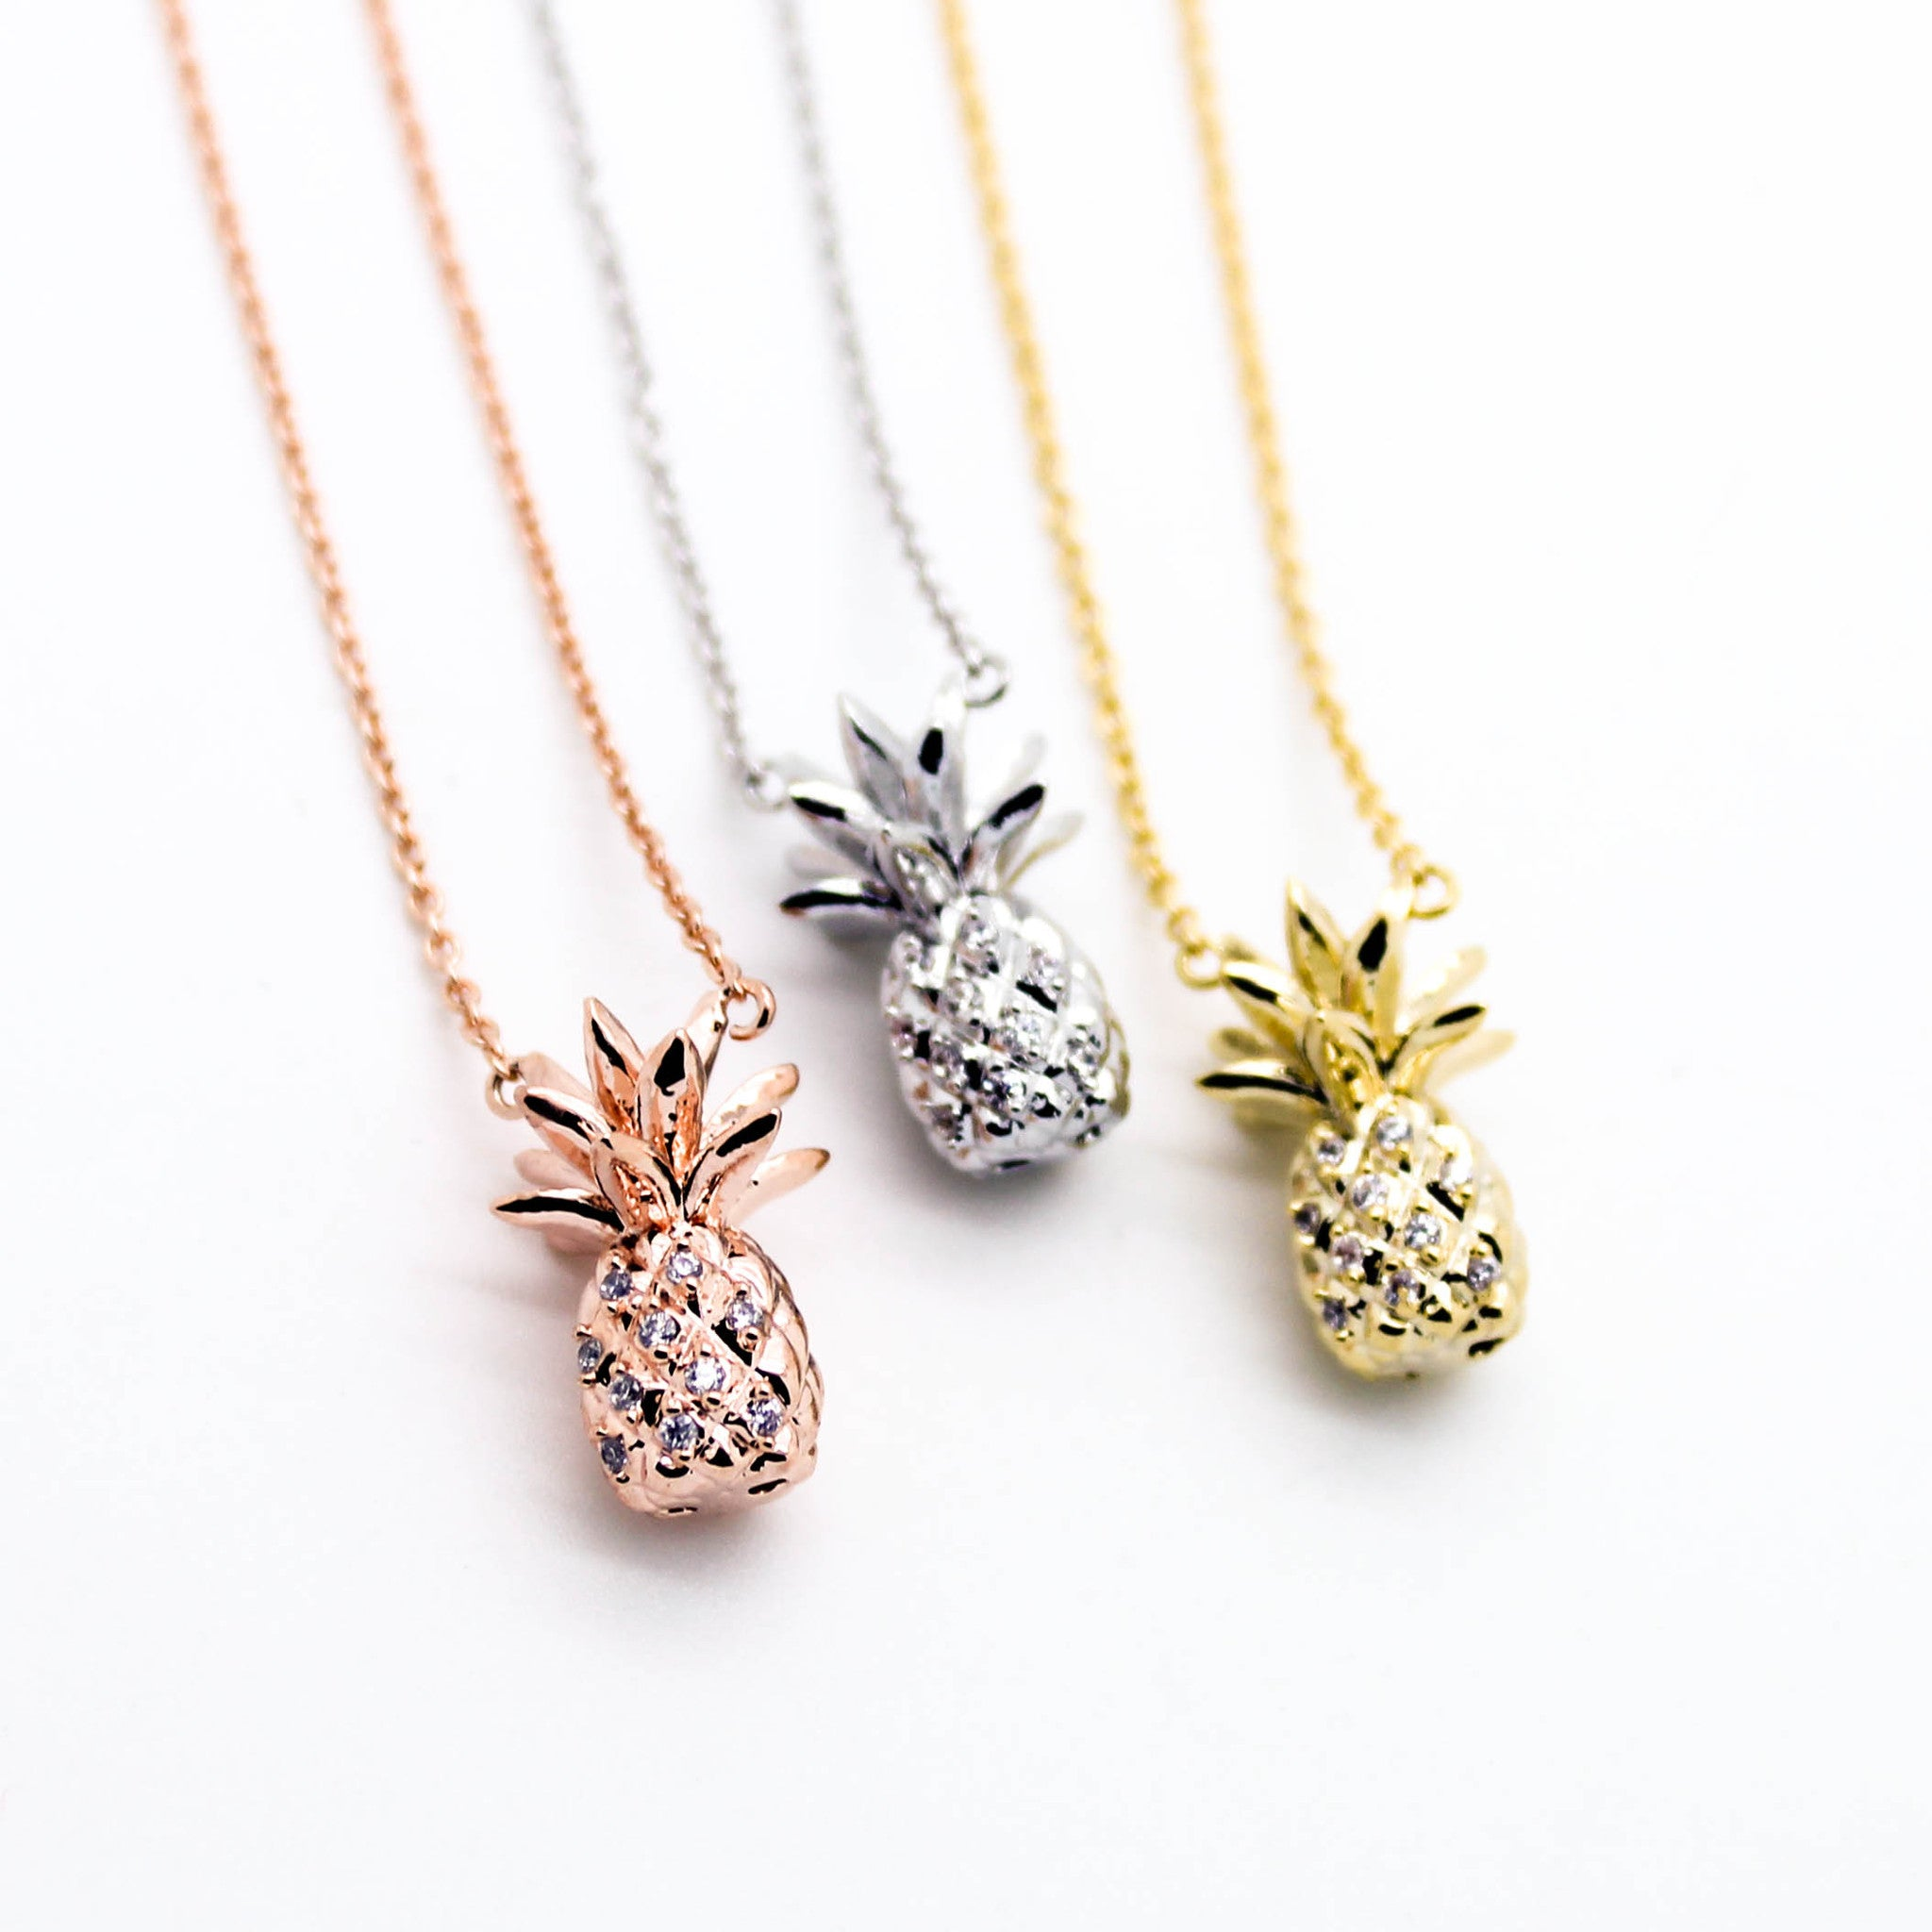 img n necklace spice of mother jugar pearl pineapple products